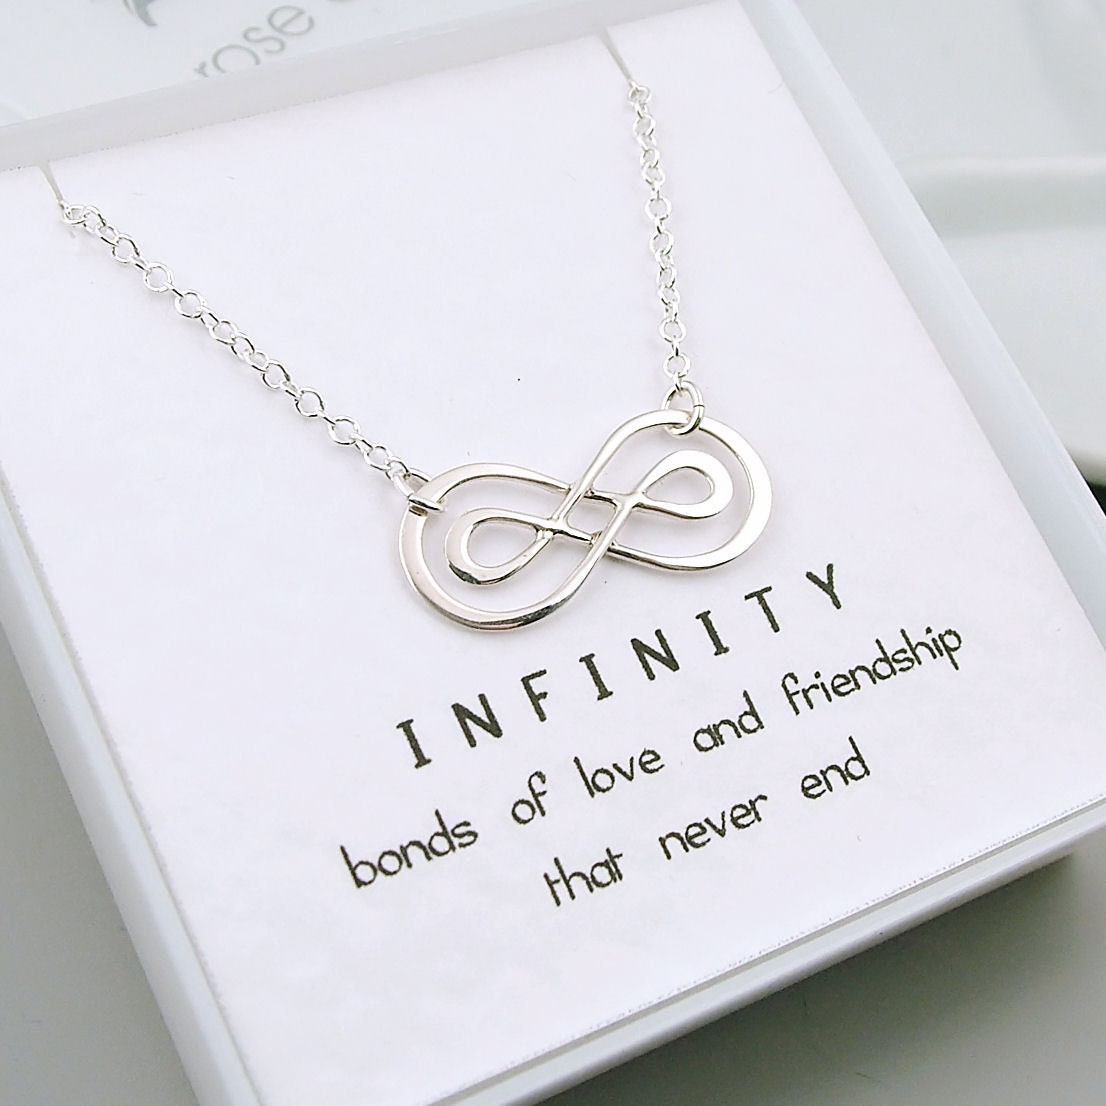 Double infinity necklace sterling silver infinity friendship description sterling silver double infinity necklace biocorpaavc Image collections